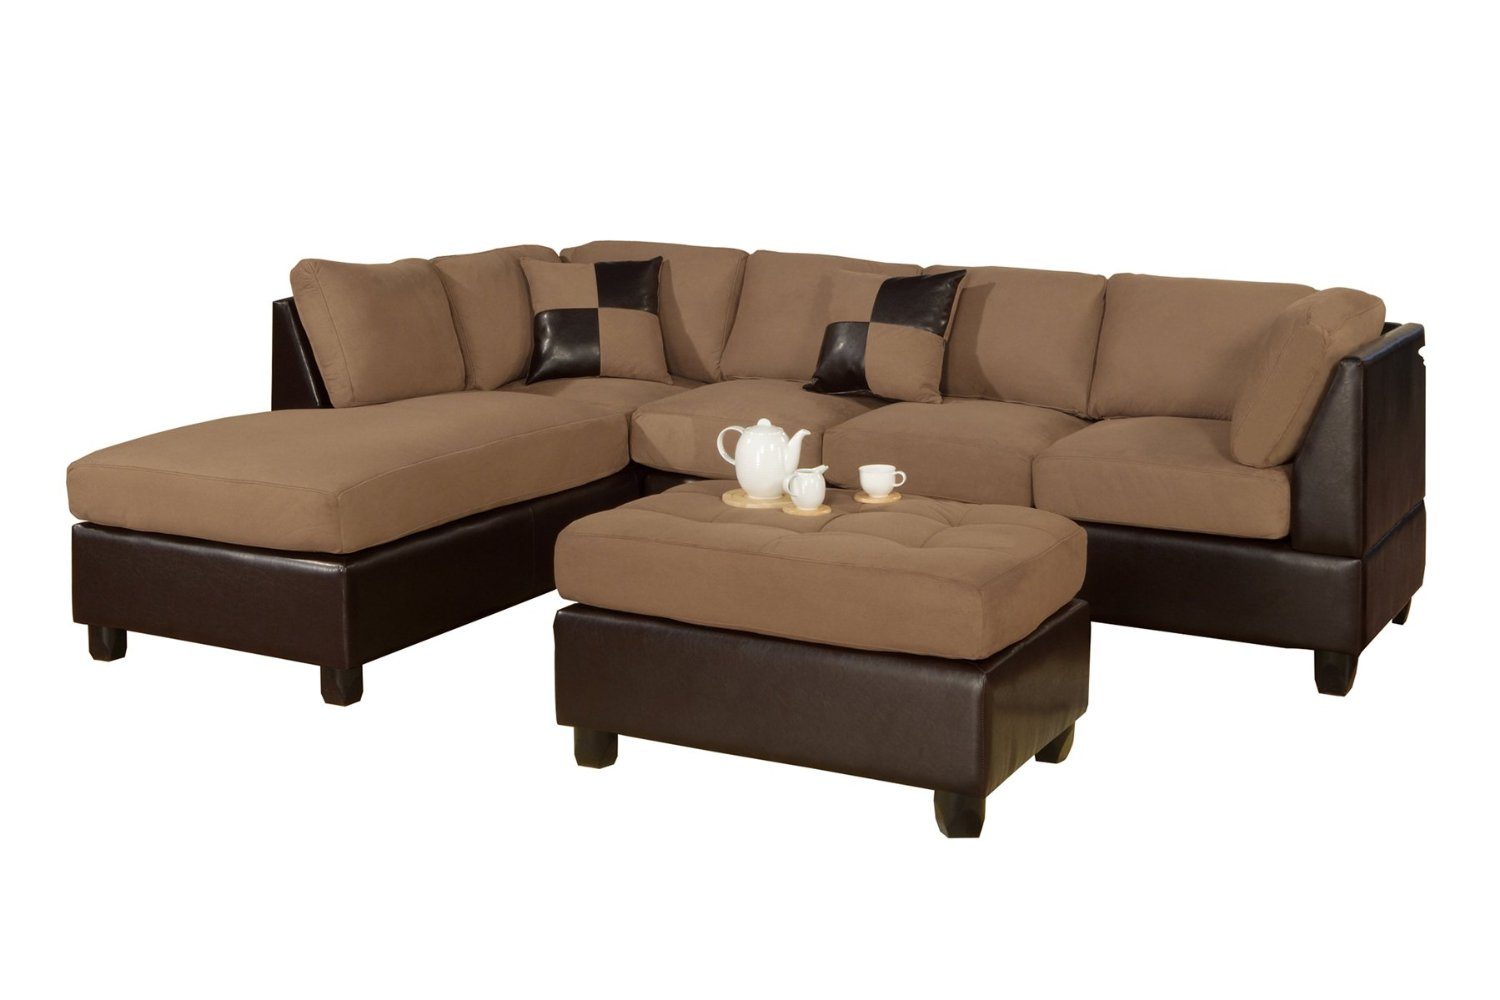 Inexpensive Sectional Sofas For Sale Pottery Barn Pb Basic Grand Sofa Slipcover Cheap